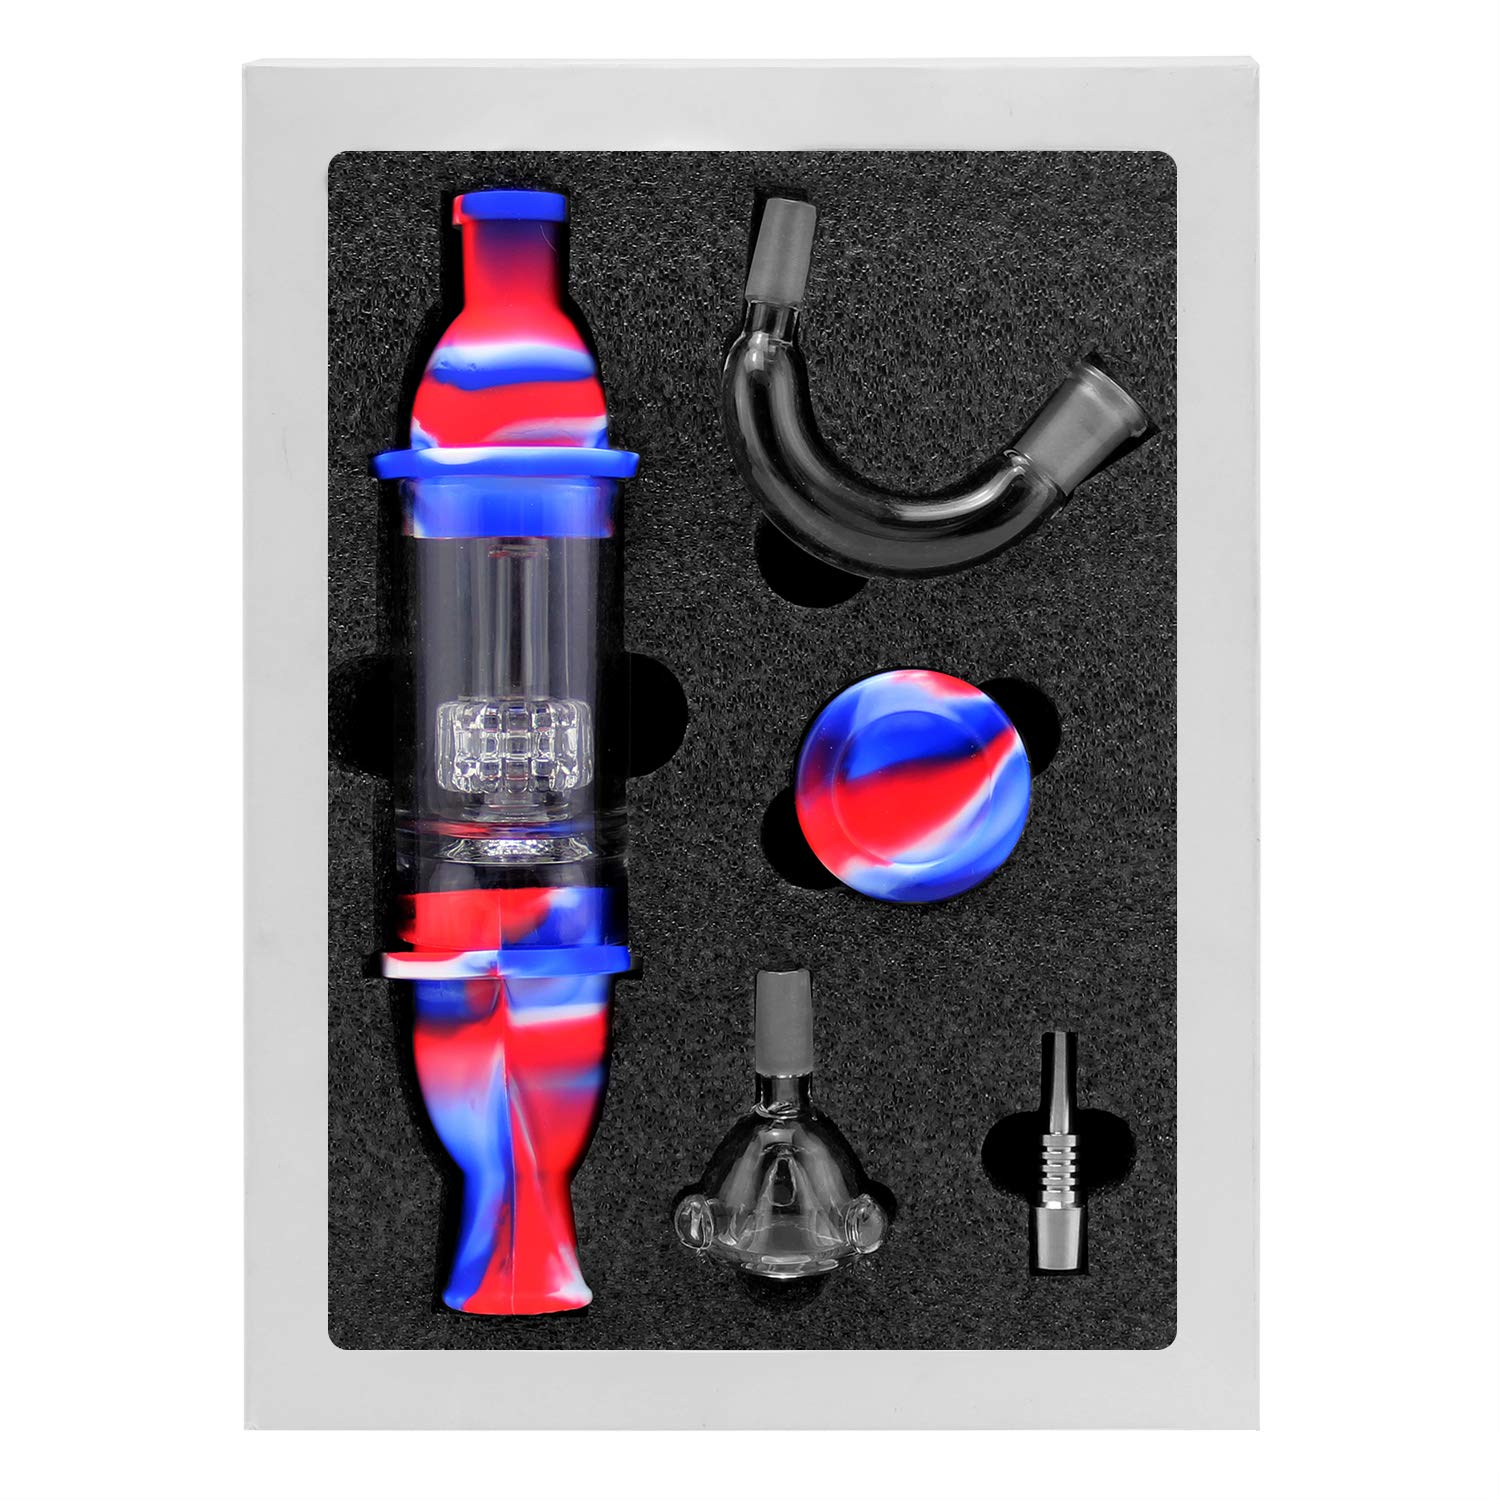 Reusable Silicone Honey Straw Water Filtering 8.3'' with Wax Carving Kit Gift Pack Red/Blue by Pilot Diary